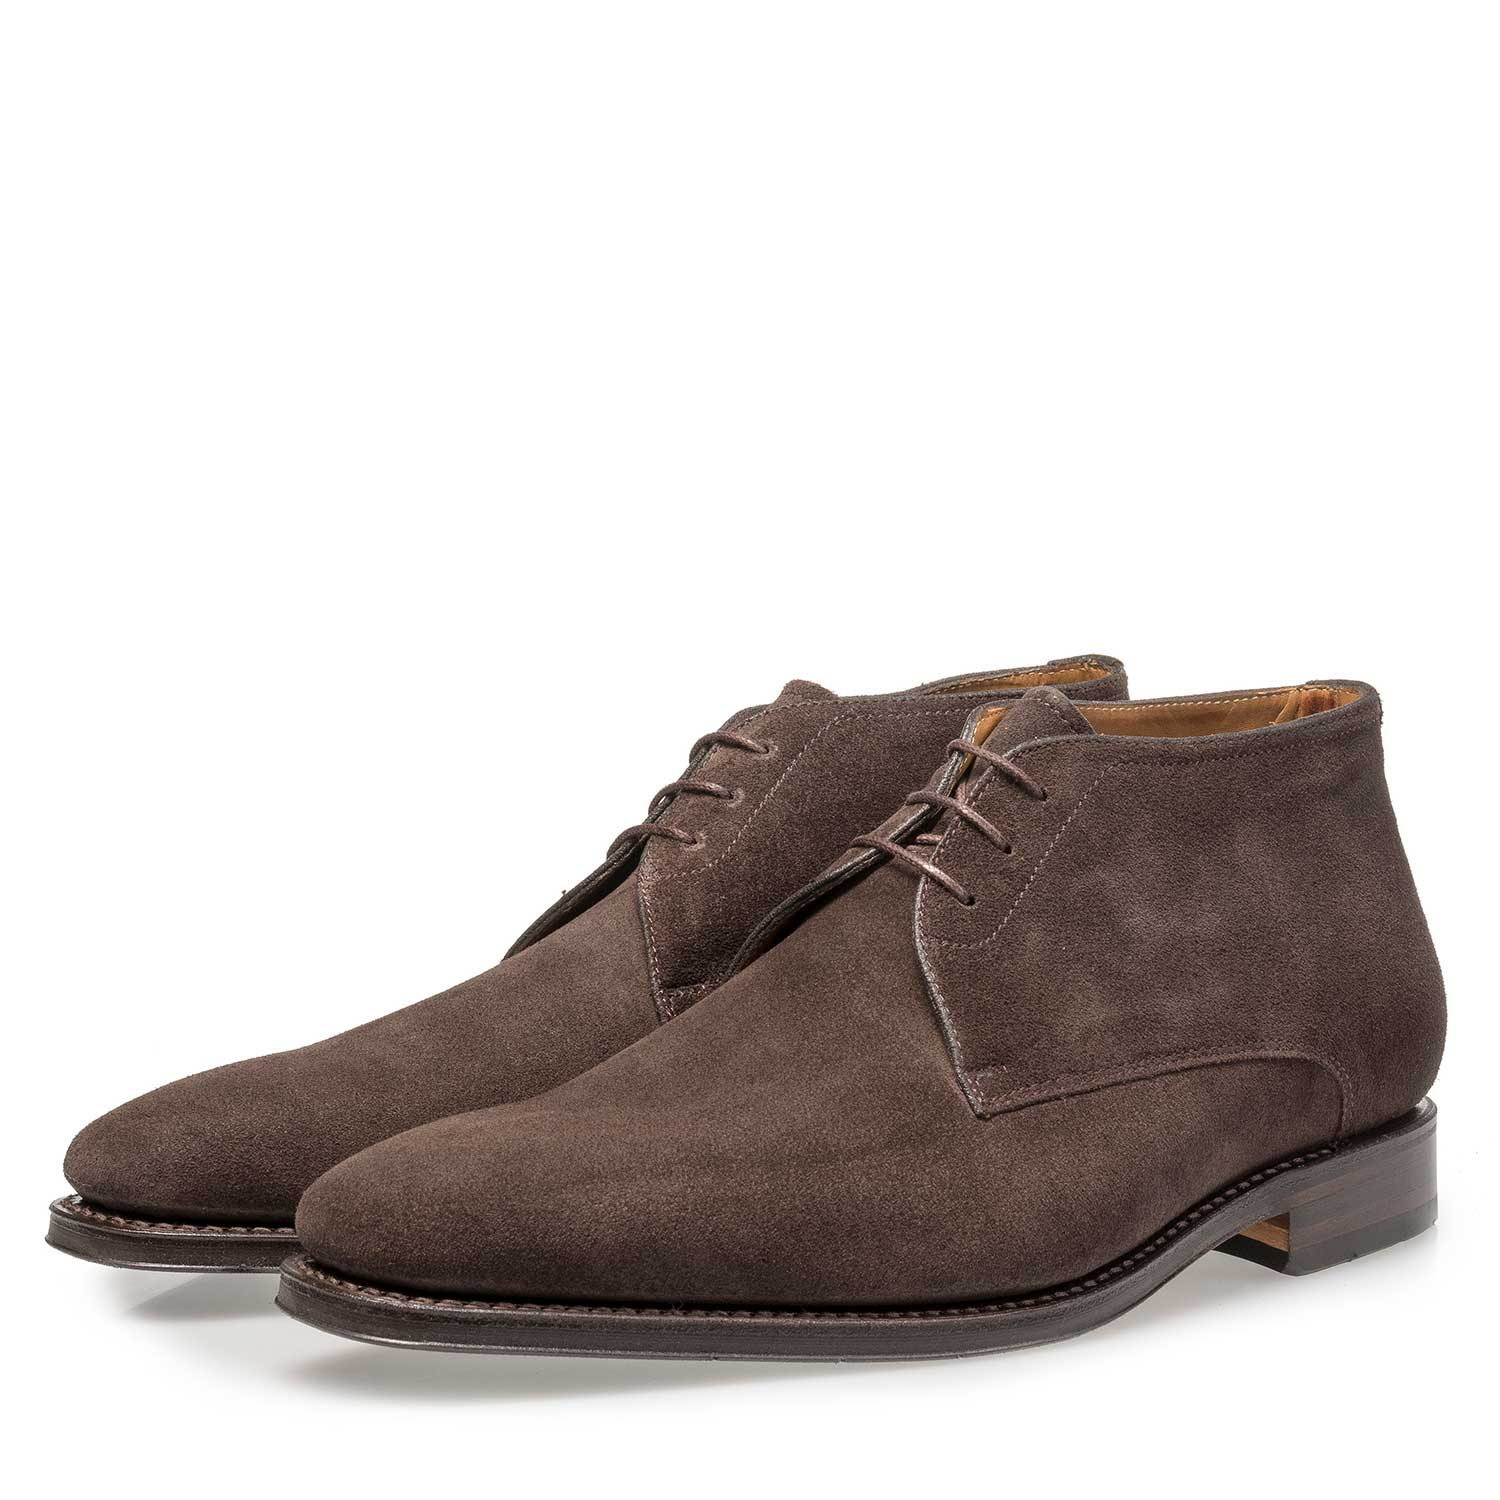 10650/02 - Dark brown waxed suede leather lace shoe